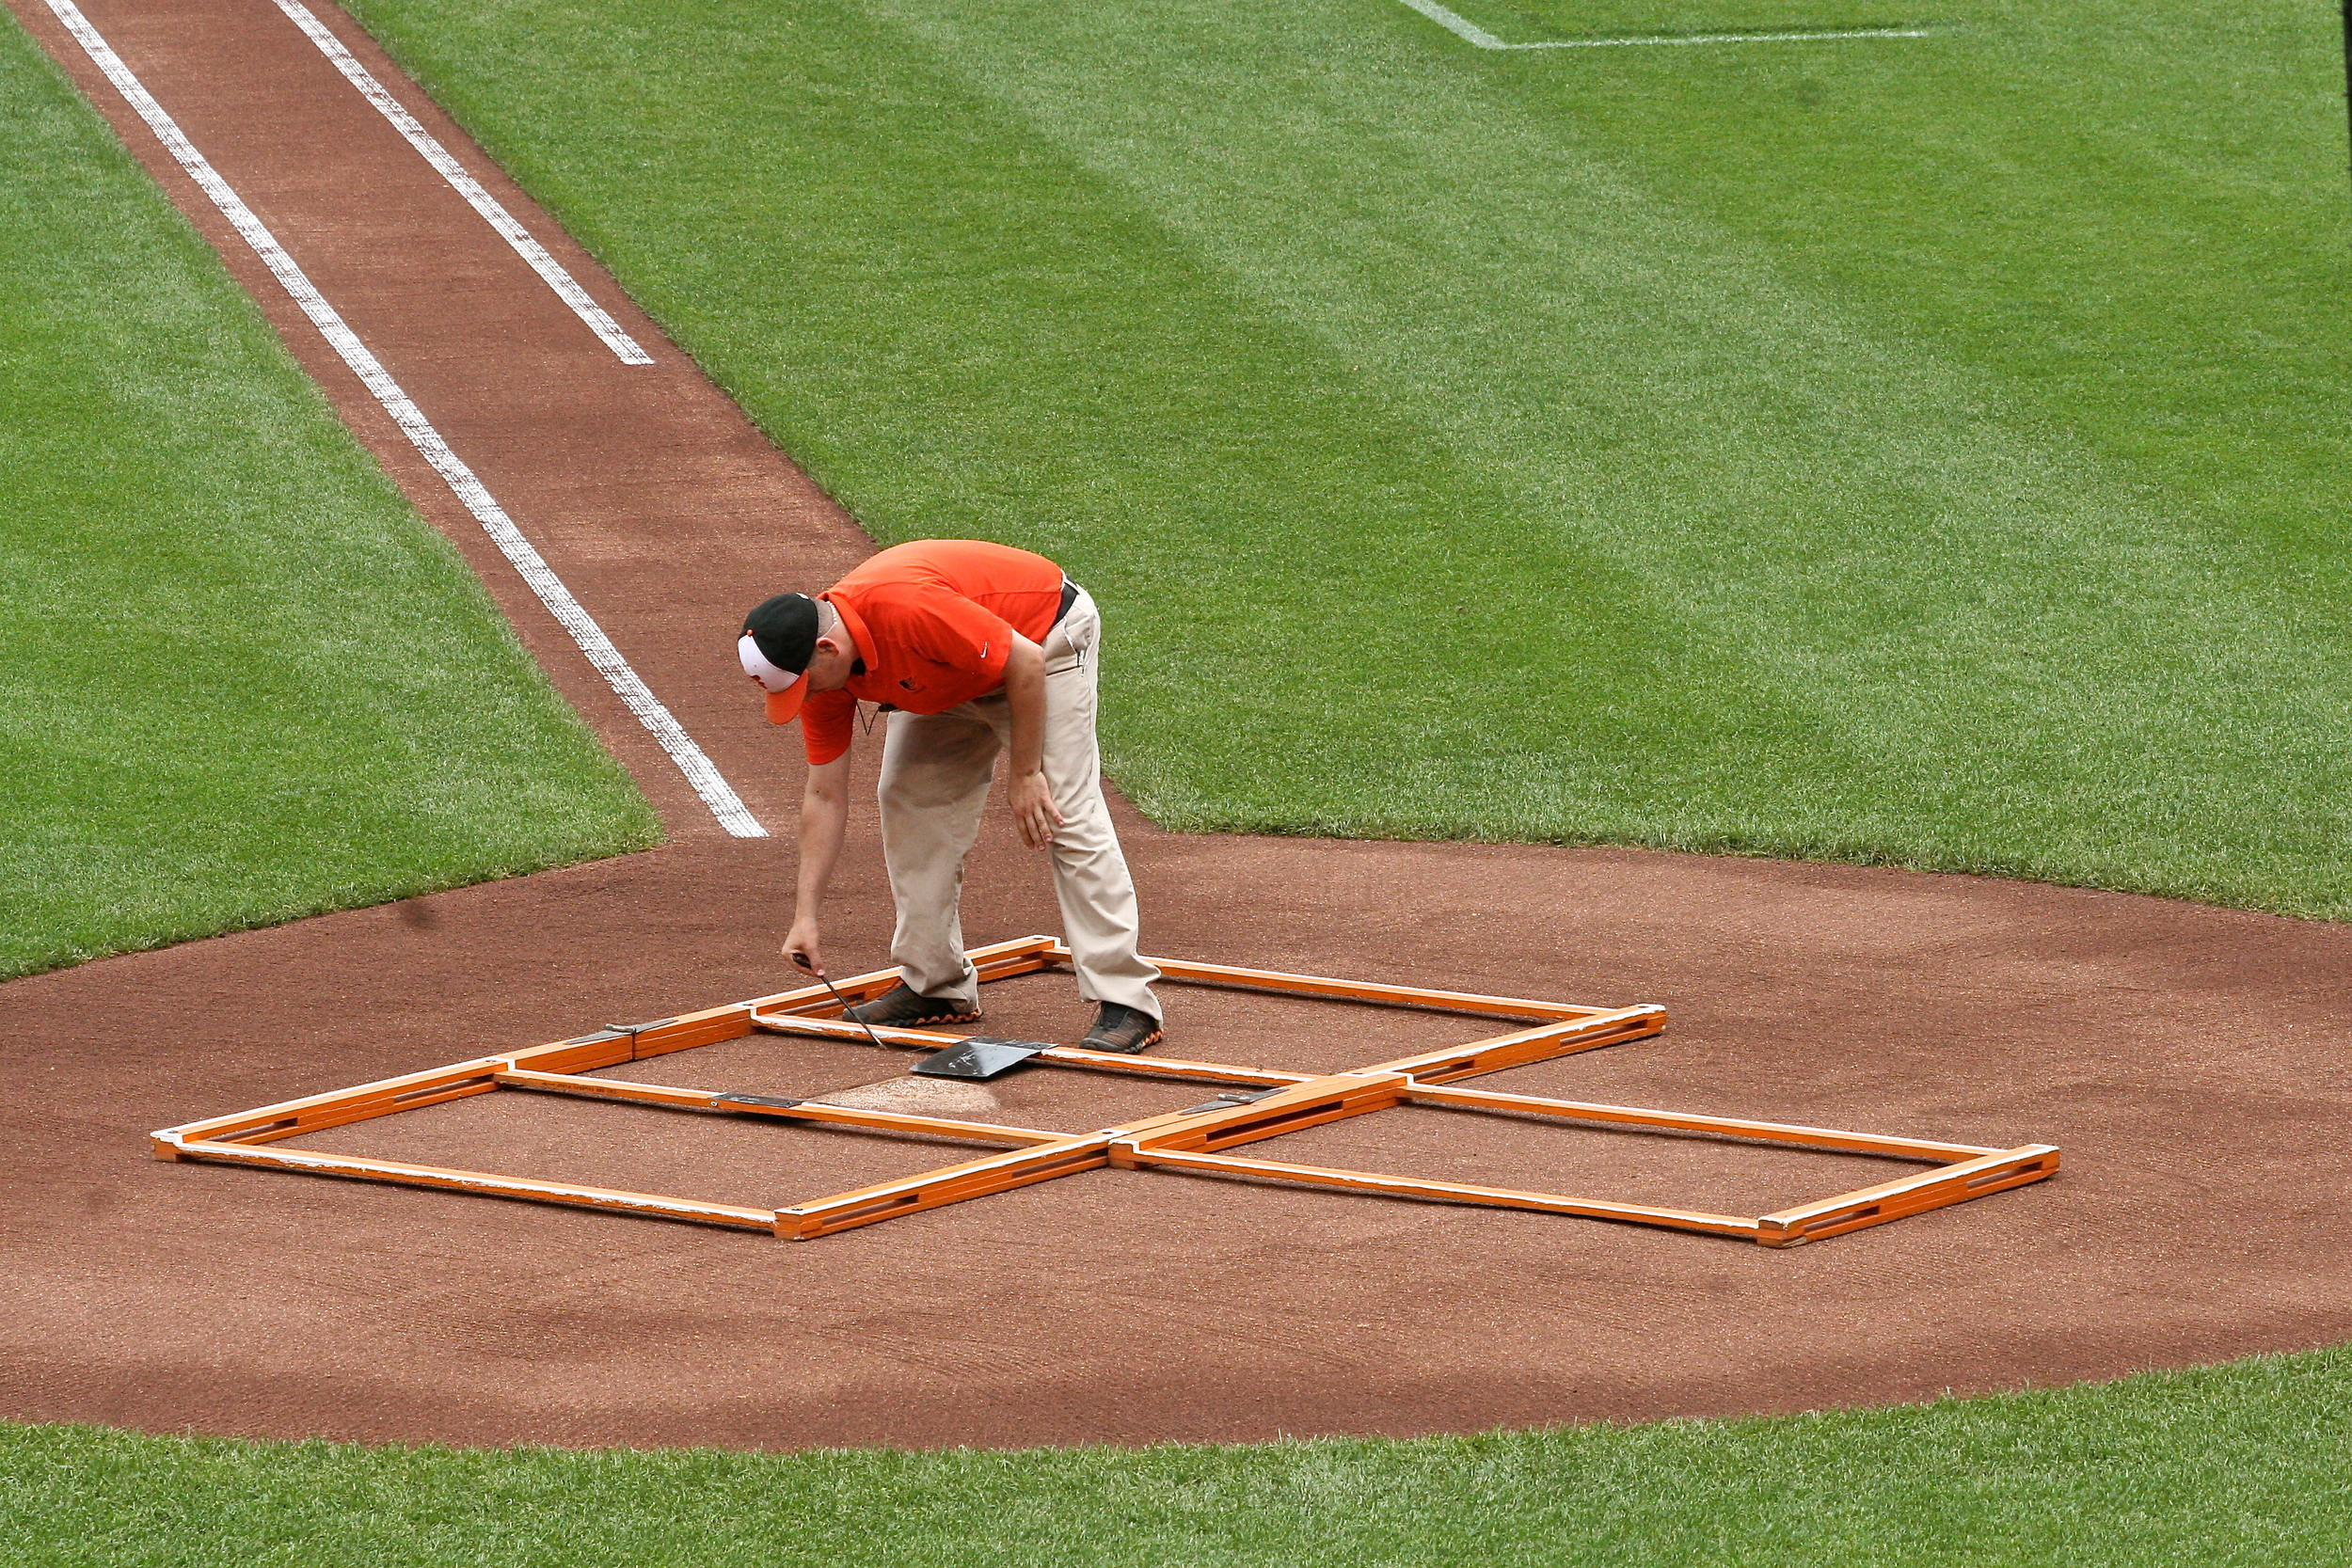 Creating the batter's box